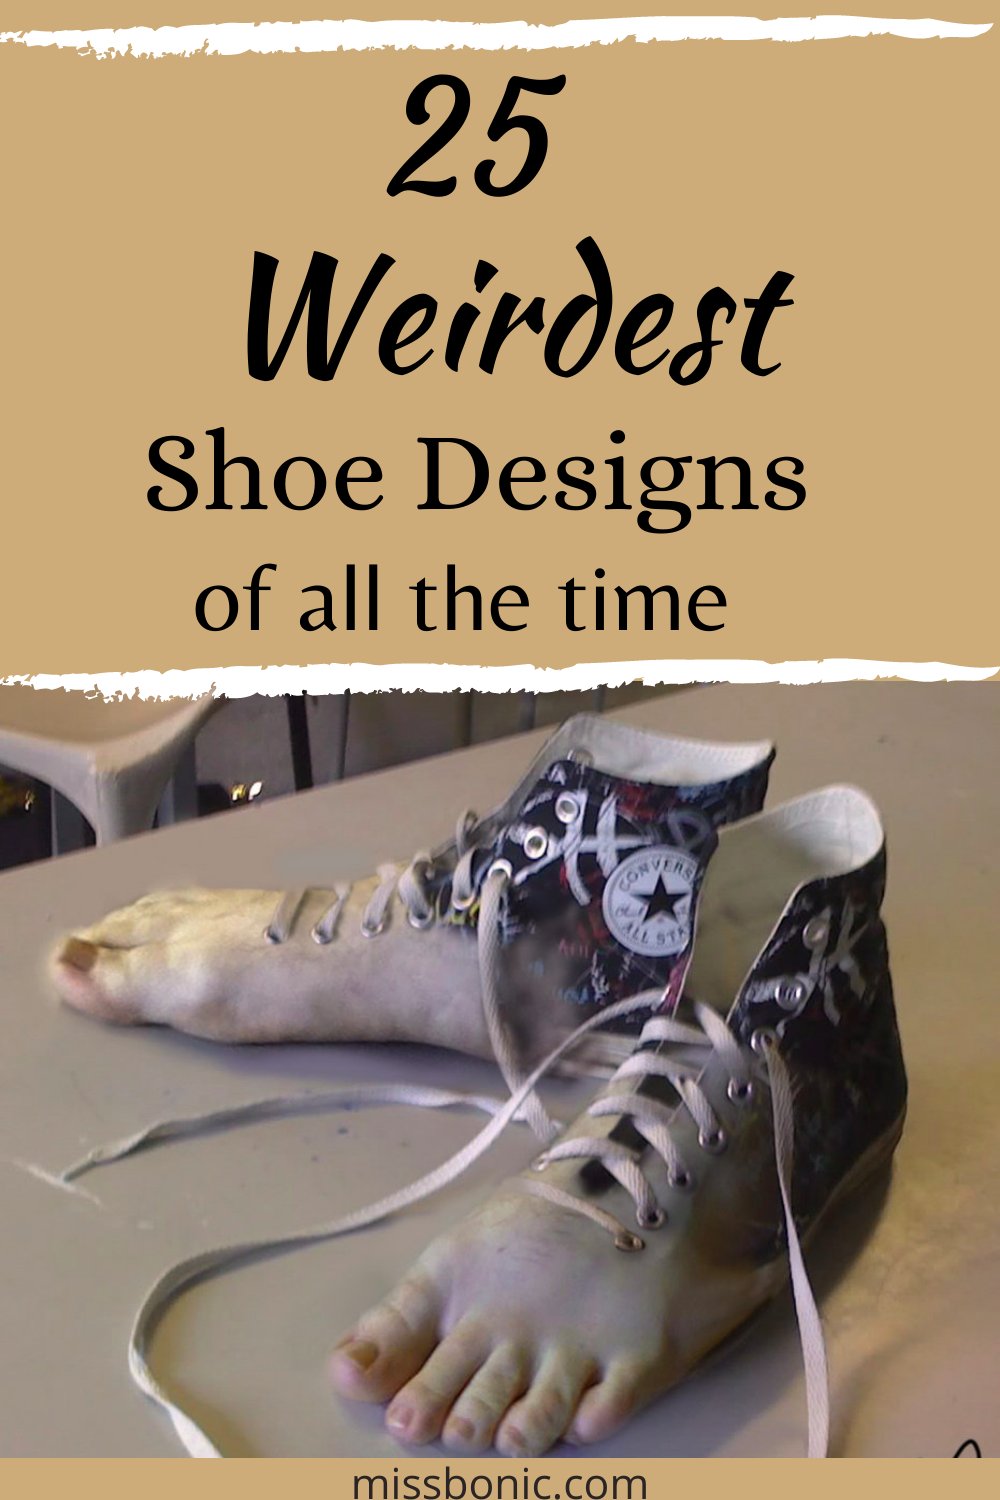 Here are 25 weirdest shoe designs of all the time. #shoedesign #weirdshoes #fashion #weirdfashion #fashionlove